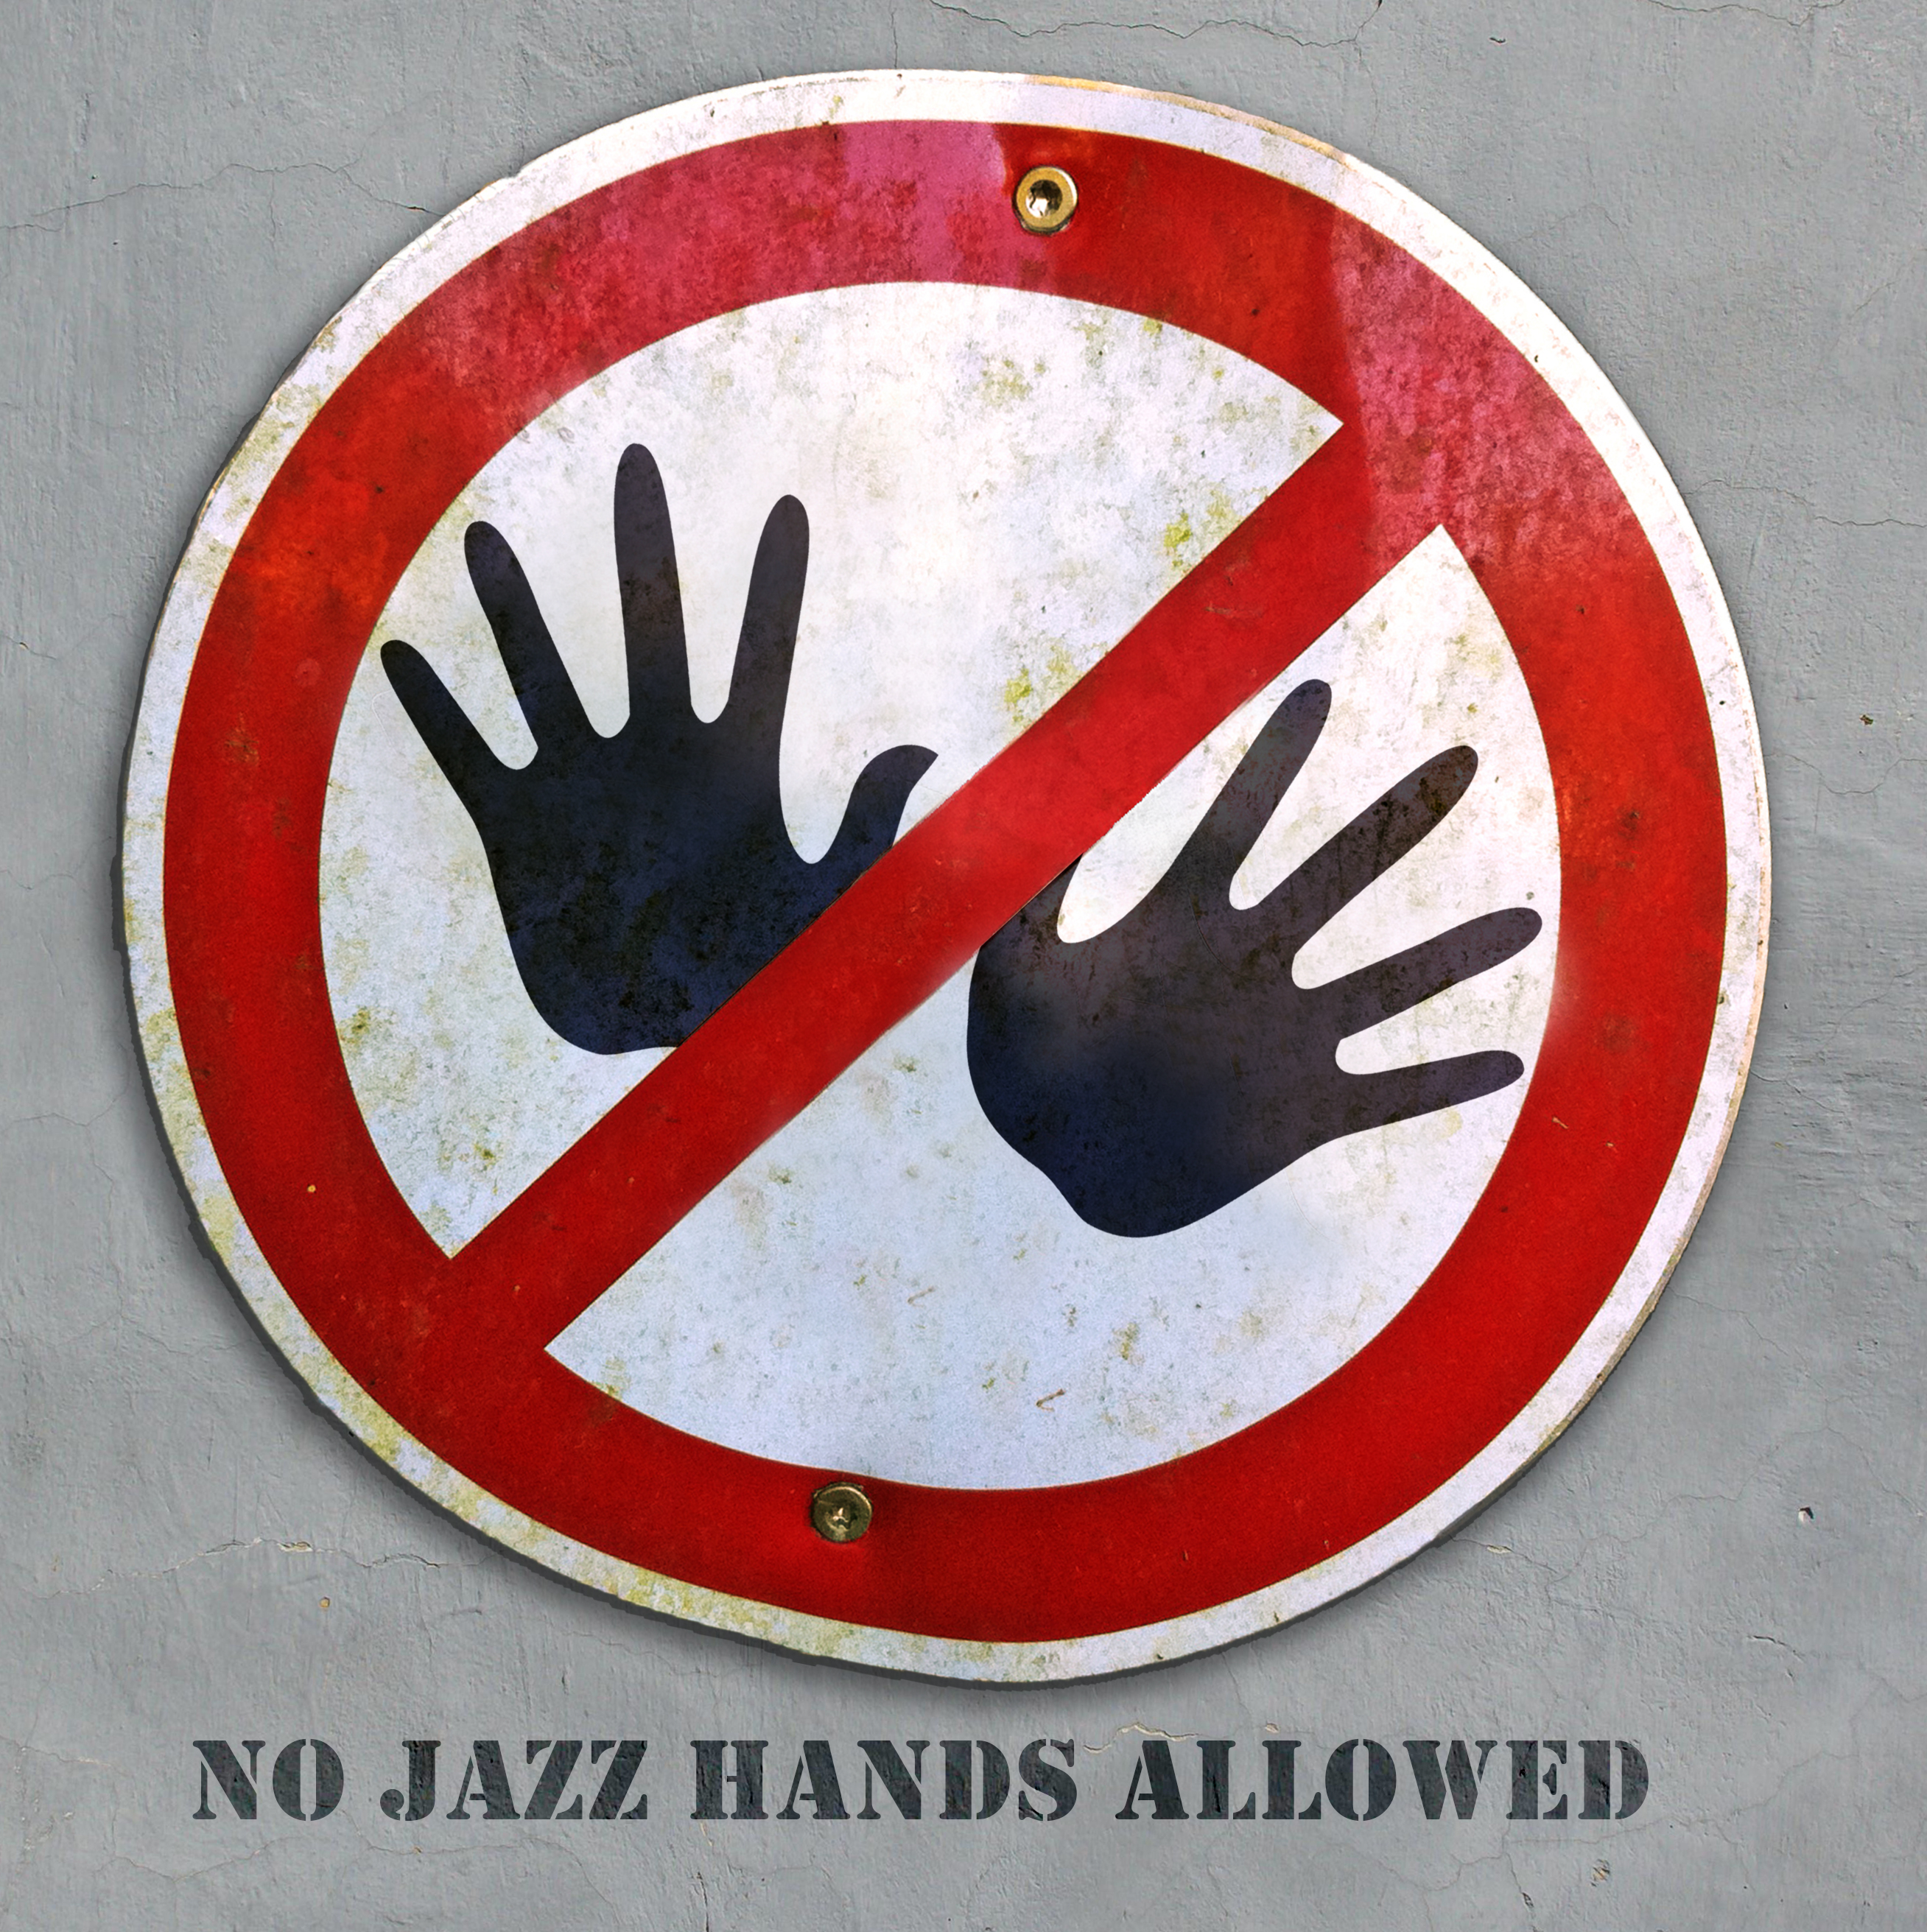 cape town sofa reviews corner bed uk next day delivery 'no jazz hands allowed' at alexander bar